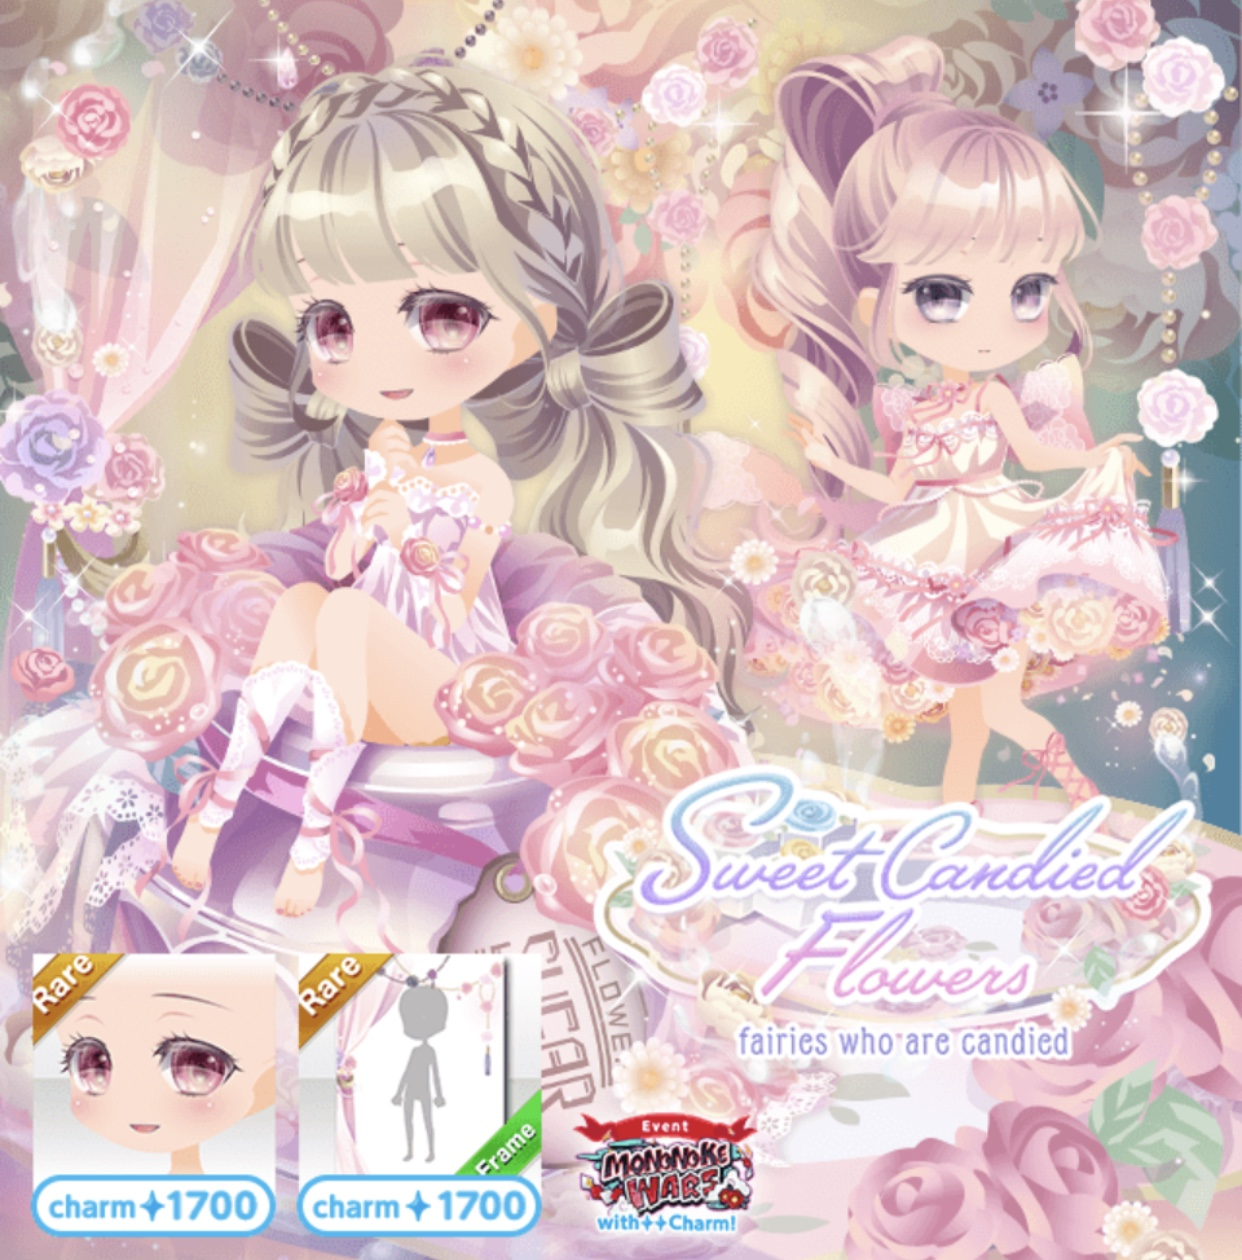 Sweet Candied Flowers Cocoppa Play Wiki Fandom Vine #spoiler free let's be real here: sweet candied flowers cocoppa play